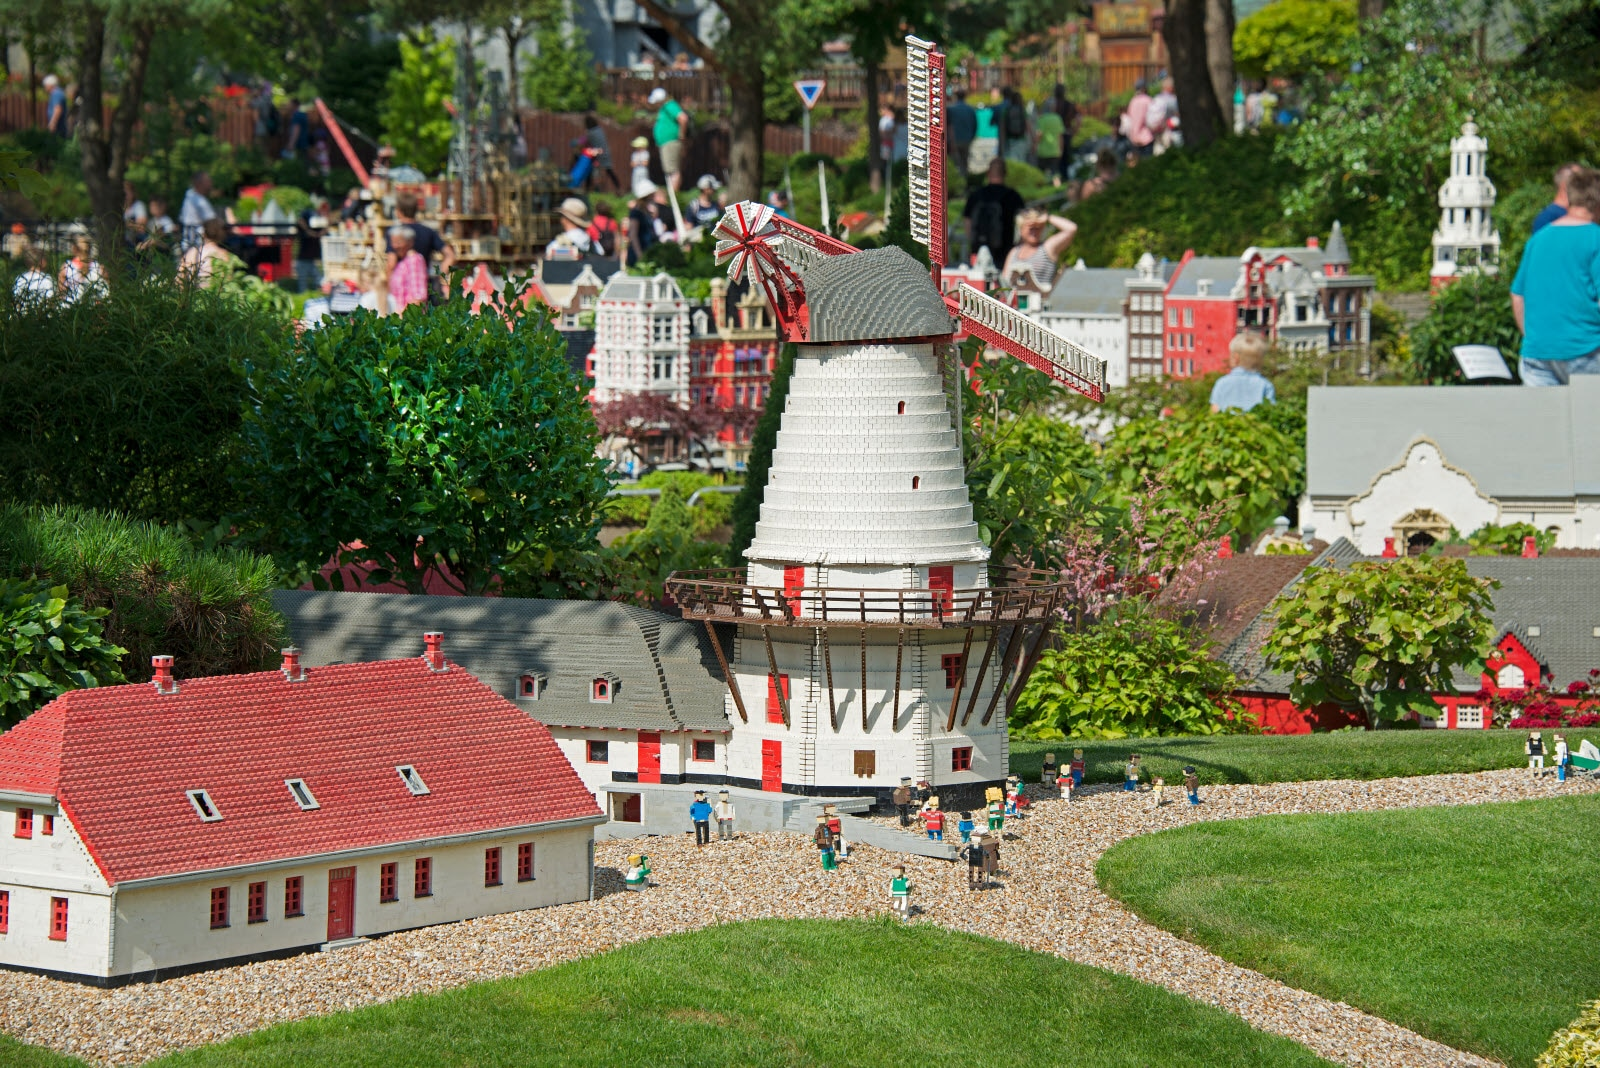 Summer in LEGOLAND®